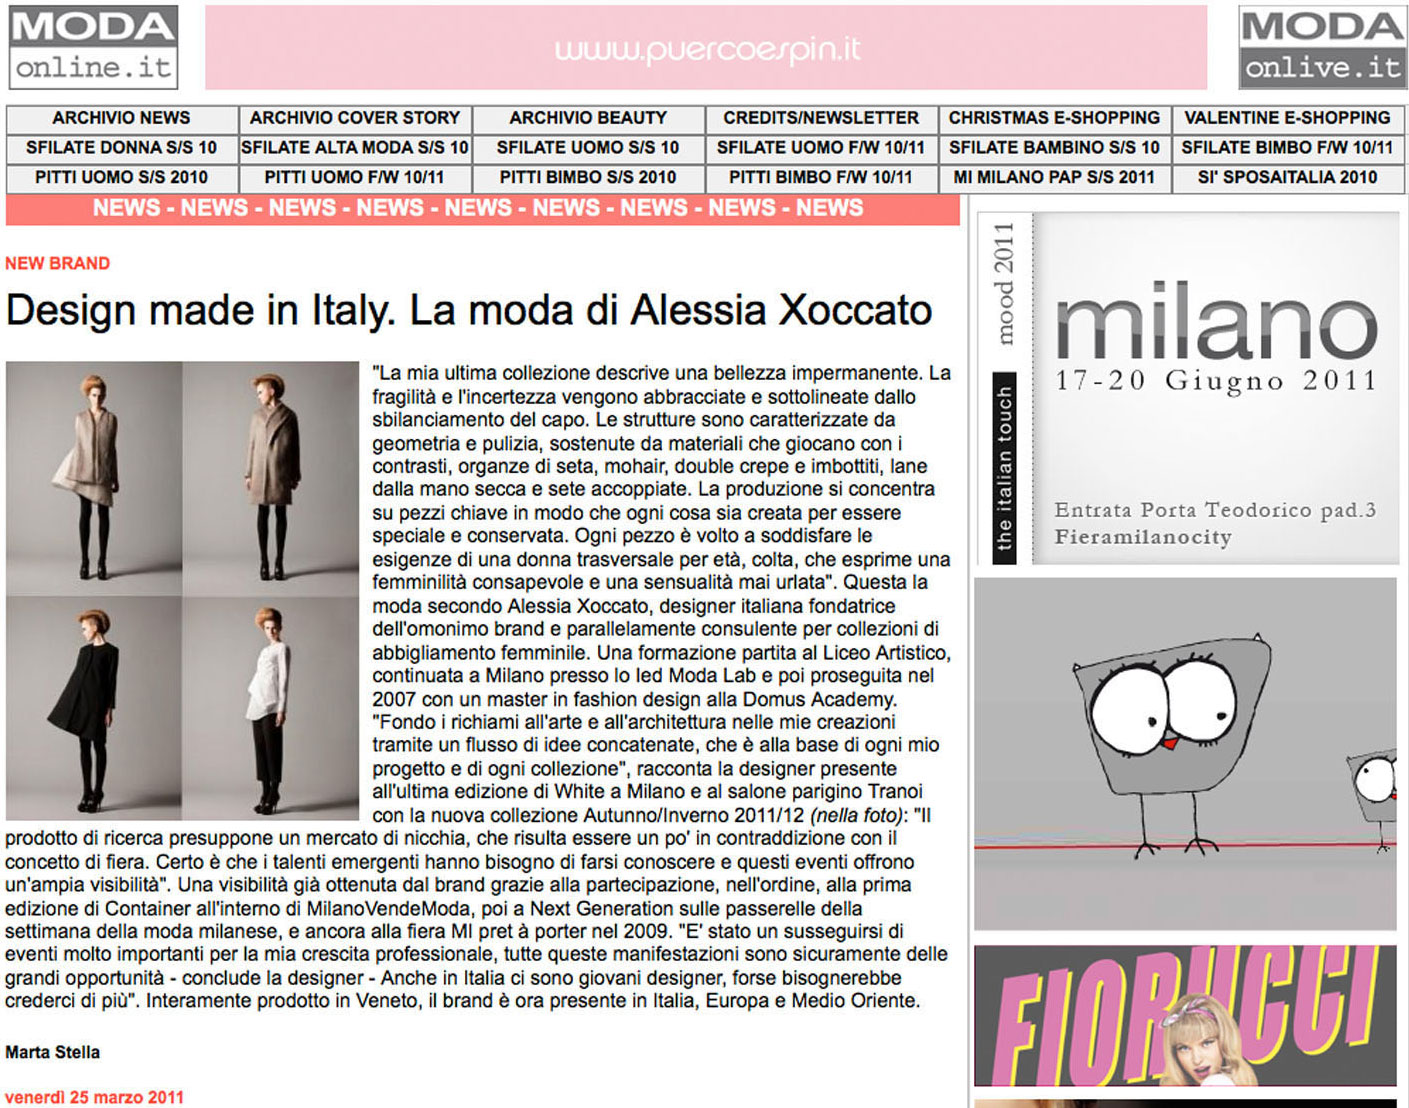 Alessia Xoccato 2011_03_Modaonline.it-copy 2011